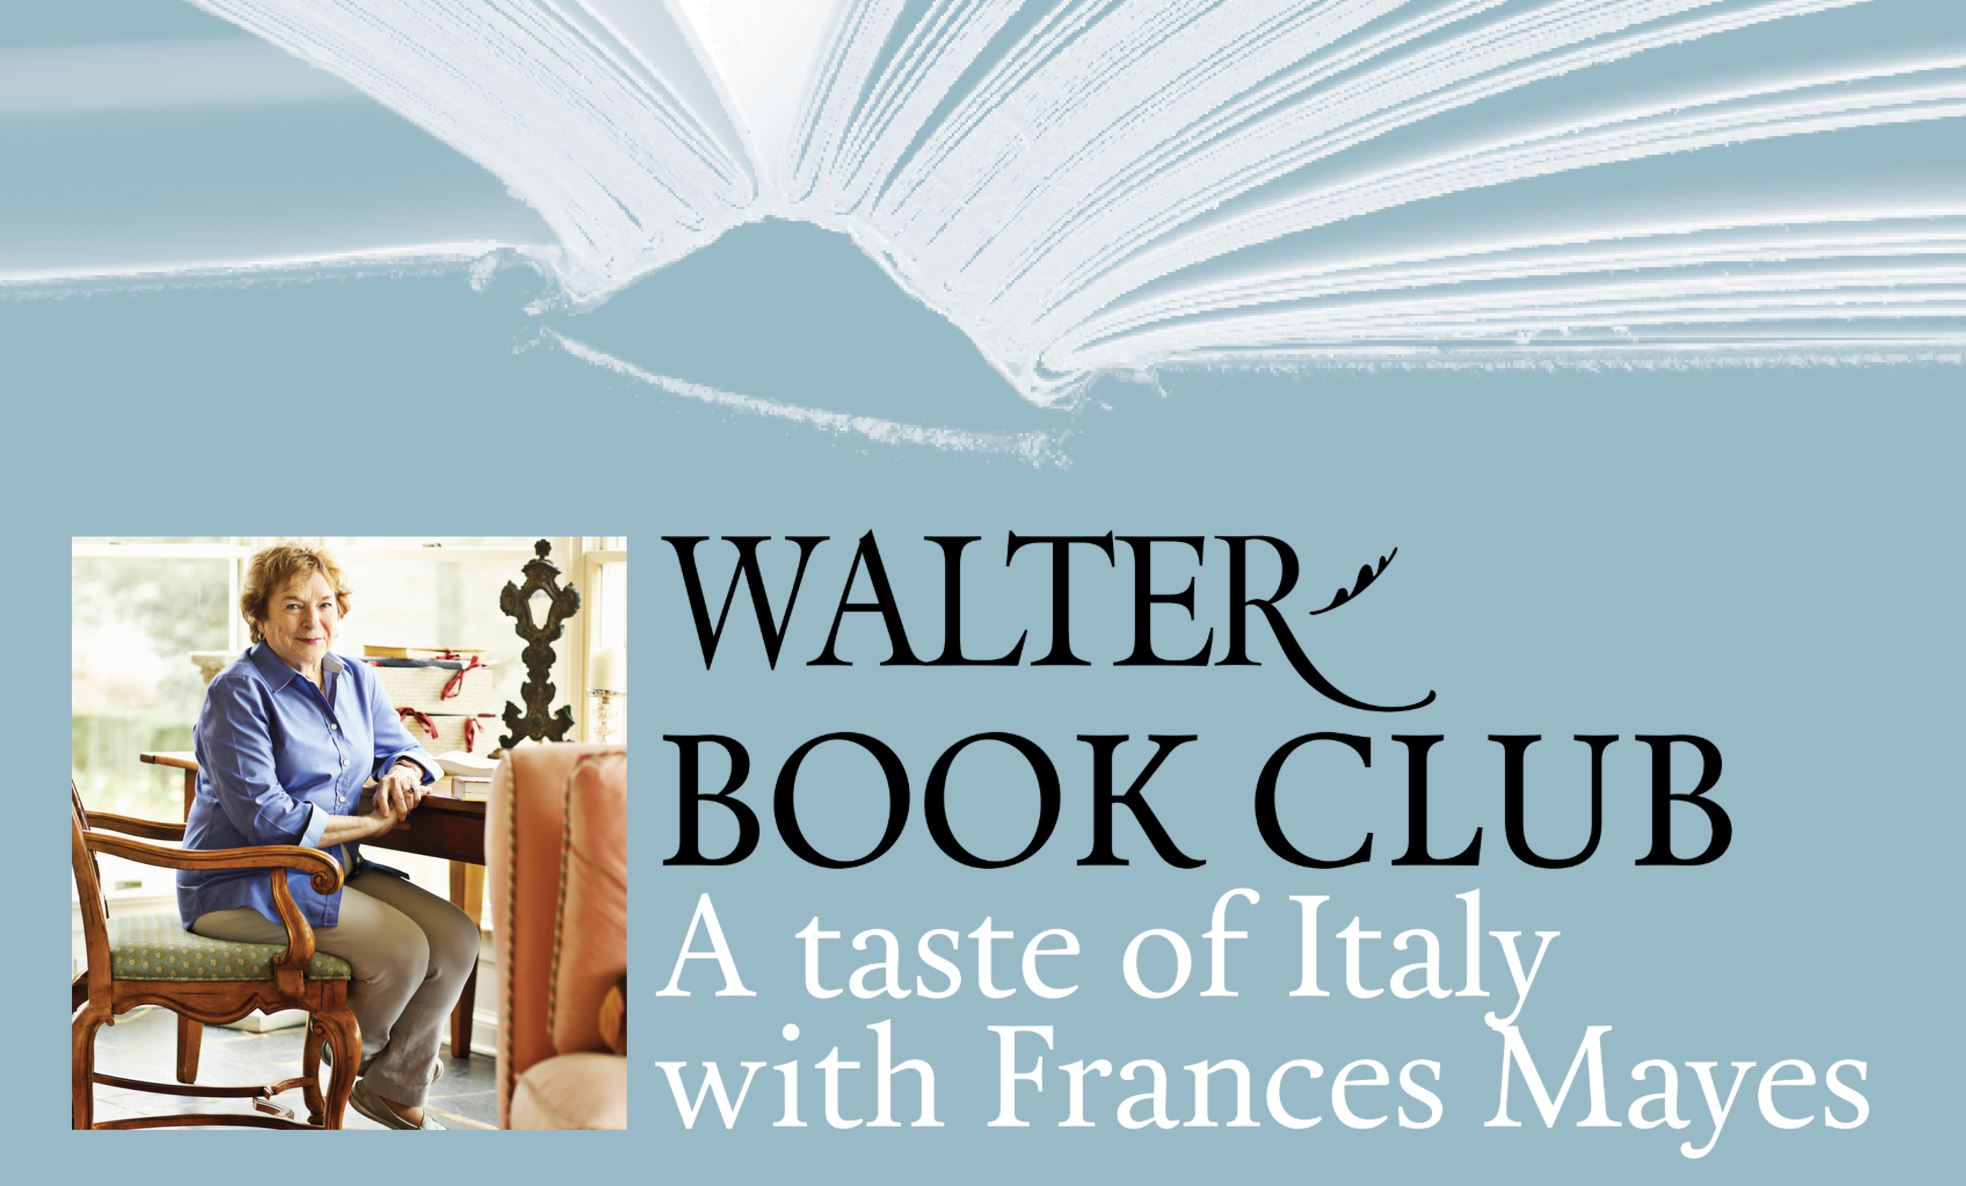 A Taste of Italy with Frances Mayes